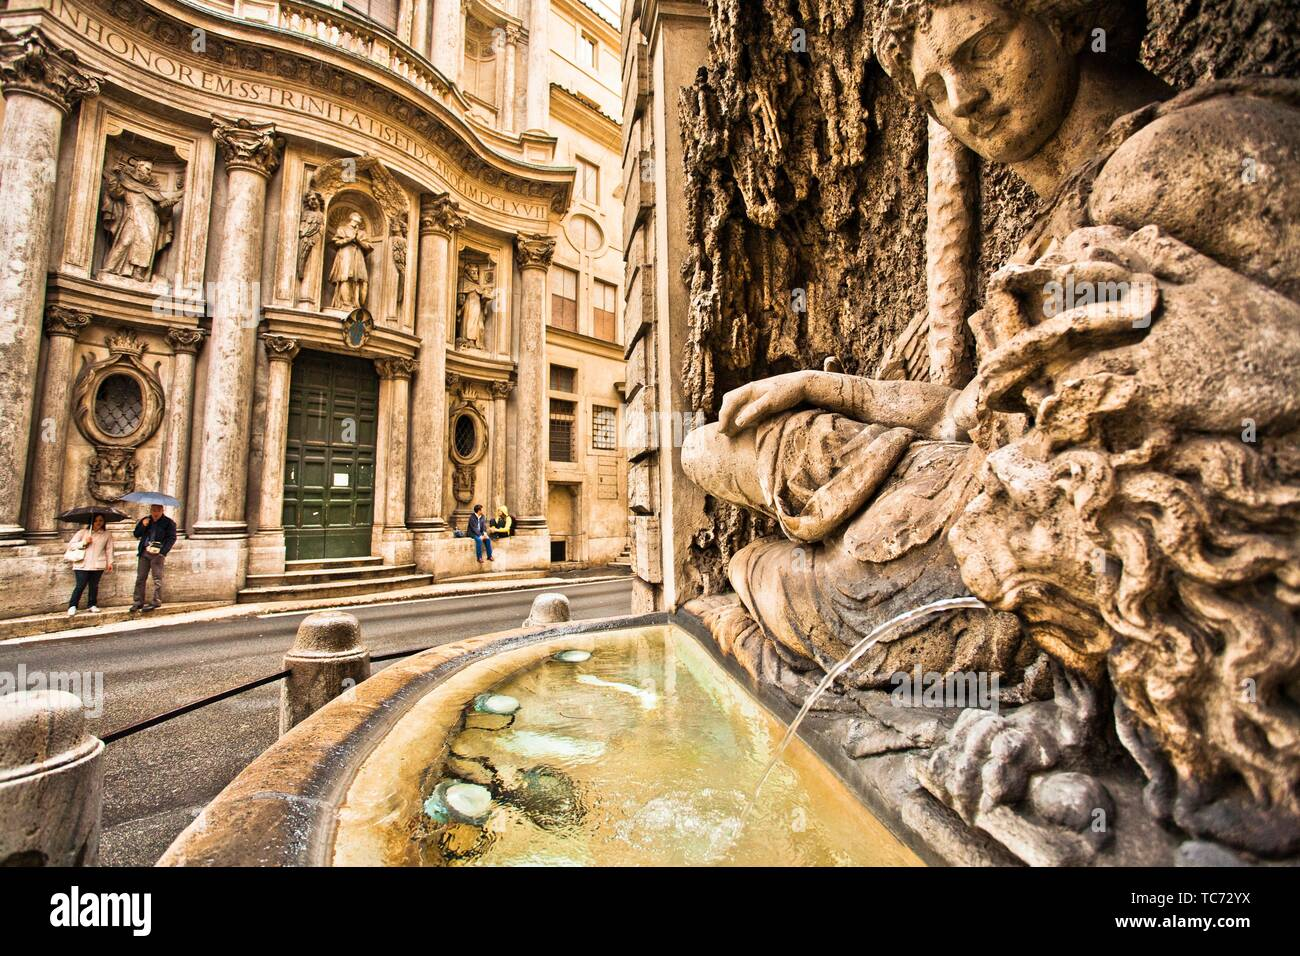 On background the church of San Carlo alle Quattro Fontane, Saint Charles at the Four Fountains, San Carlino, Baroque architecture, at right the - Stock Image